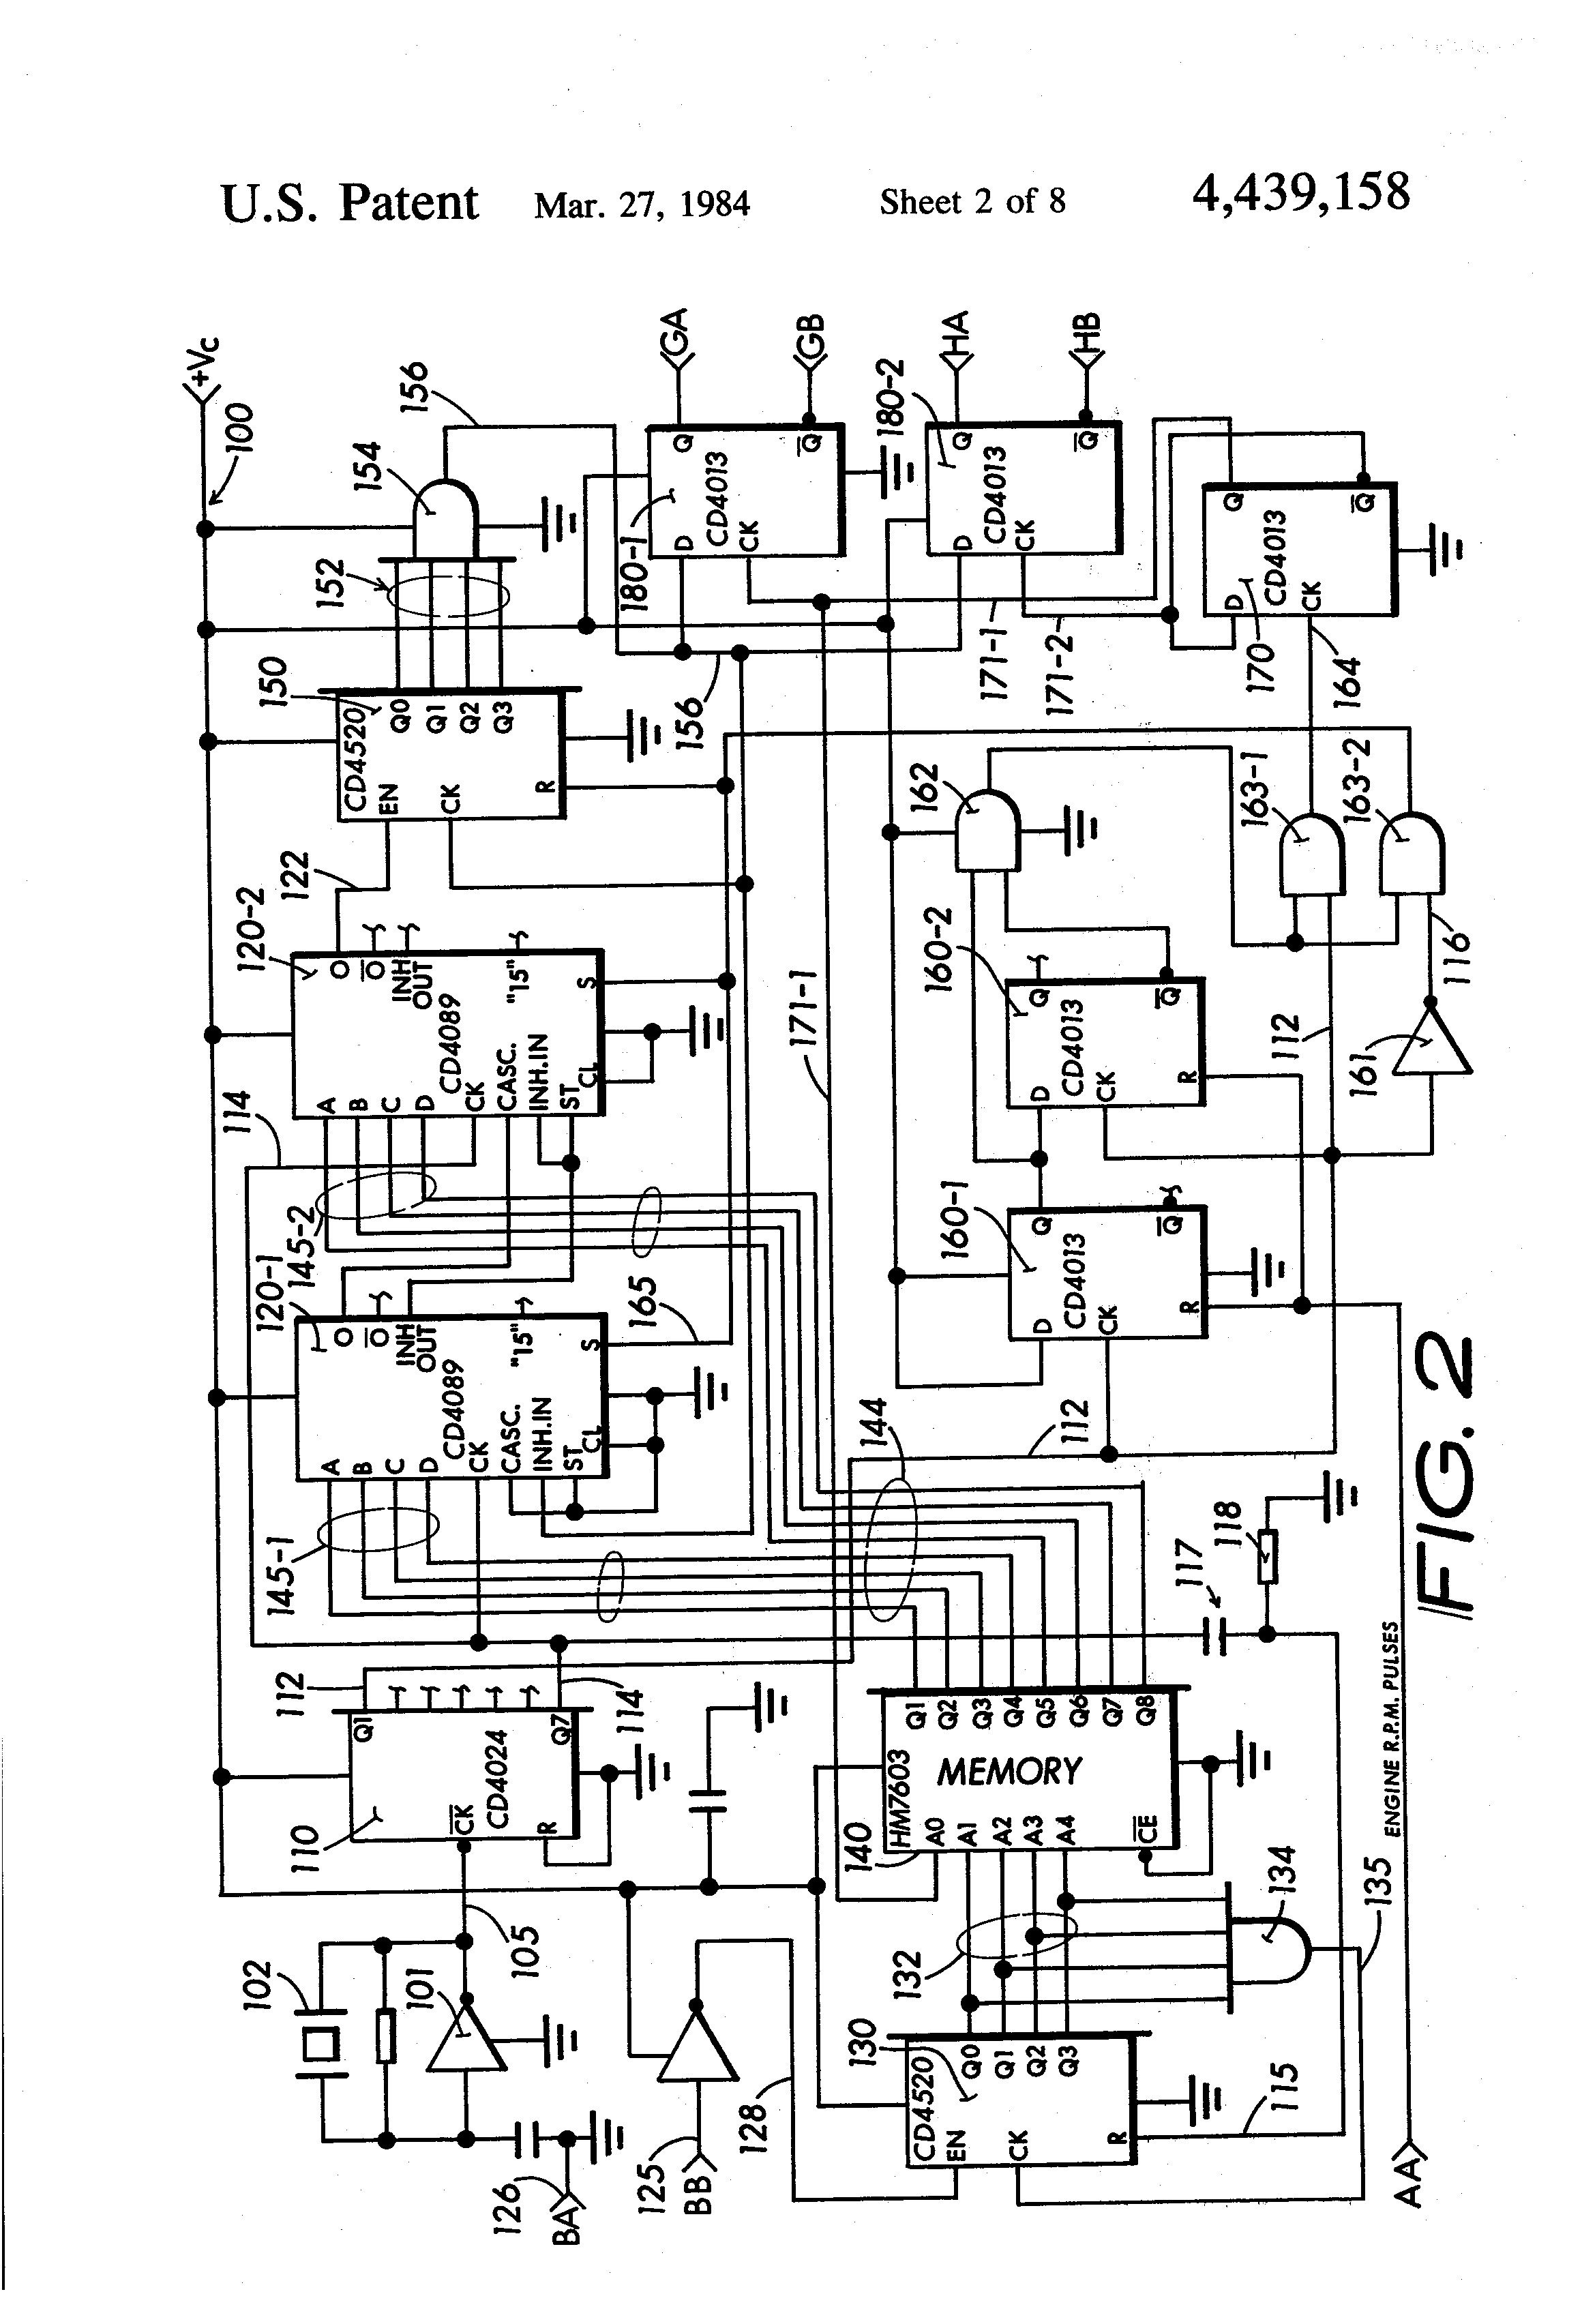 2007 Bobcat Skid Steer Wiring Diagram 763 Bobcat Wiring